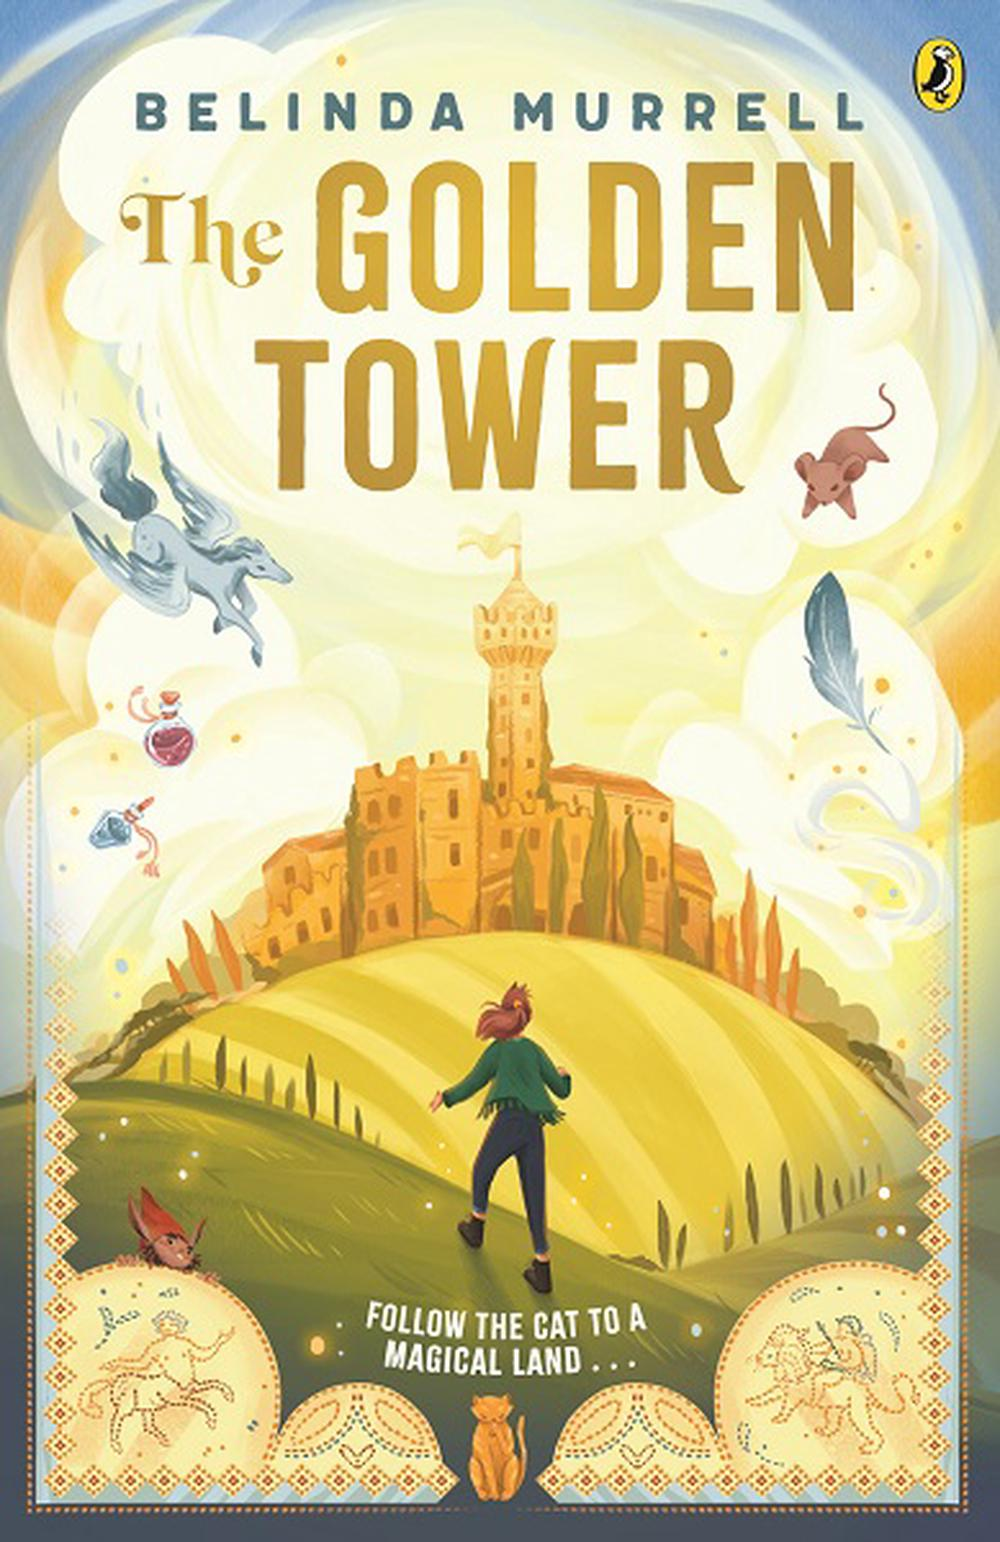 The Golden Tower